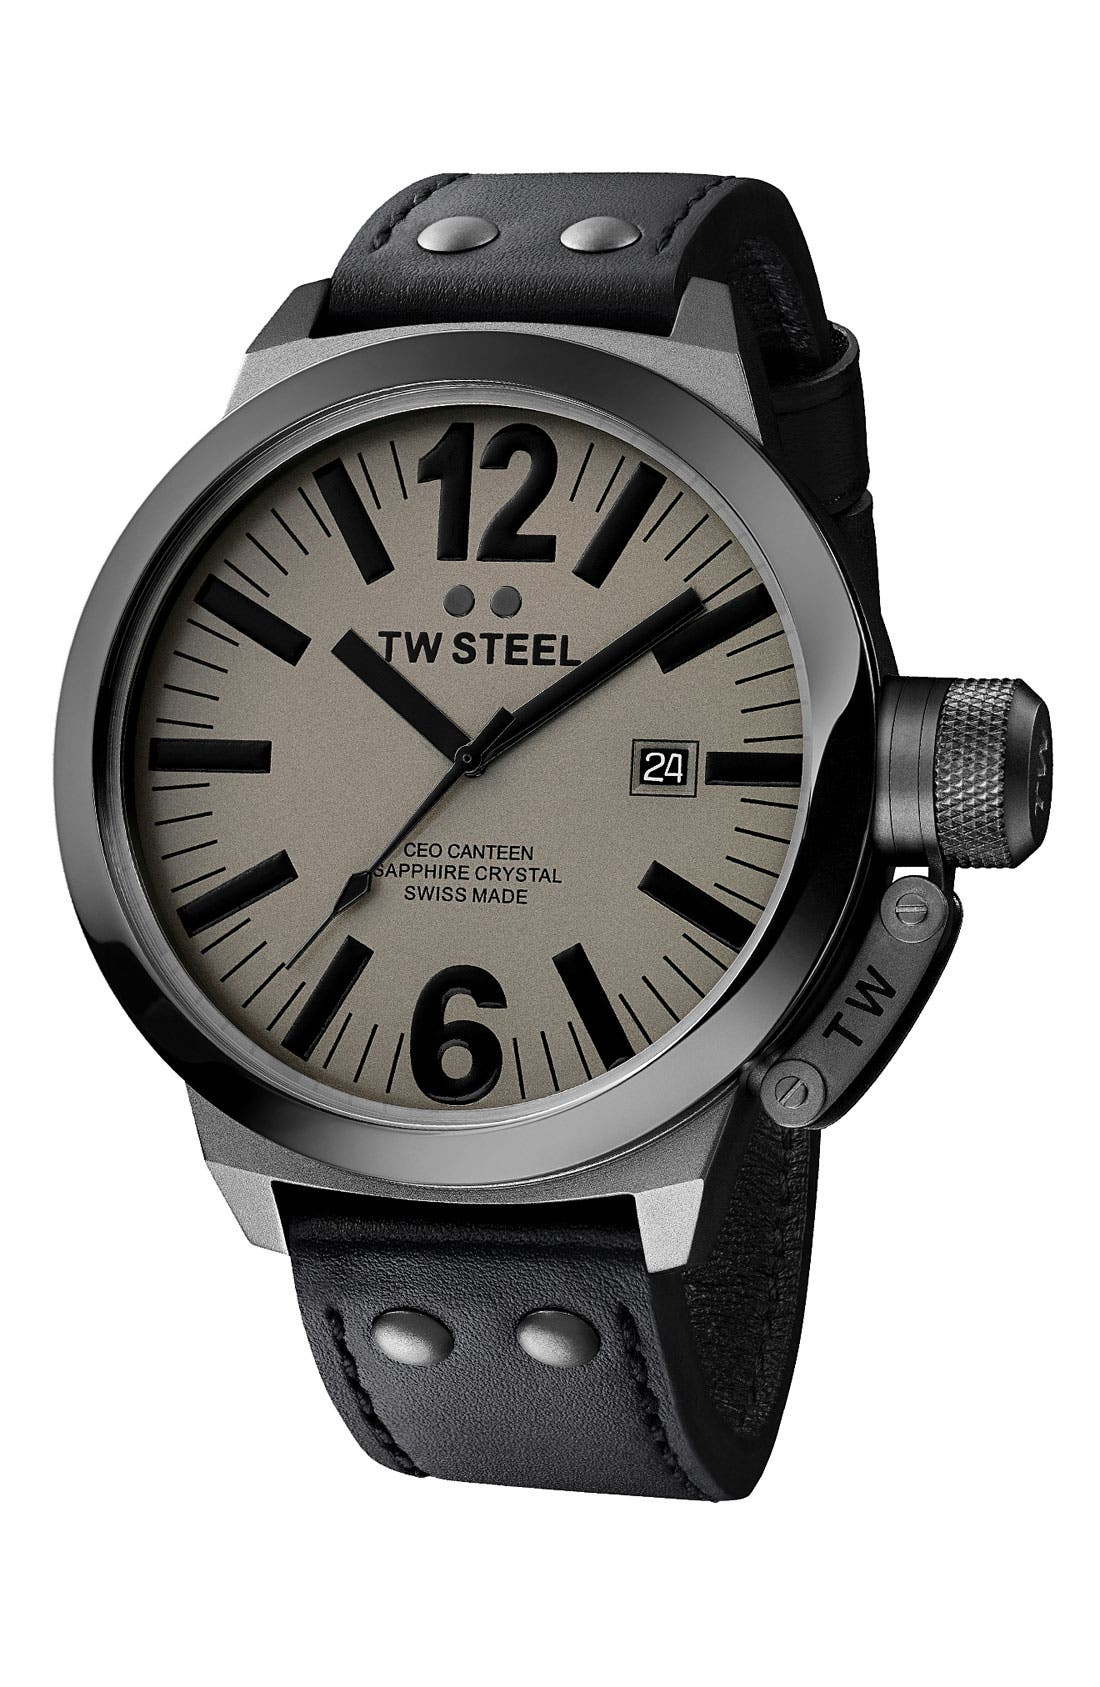 Main Image - TW Steel 'CEO Canteen - Extra Large' Leather Strap Watch